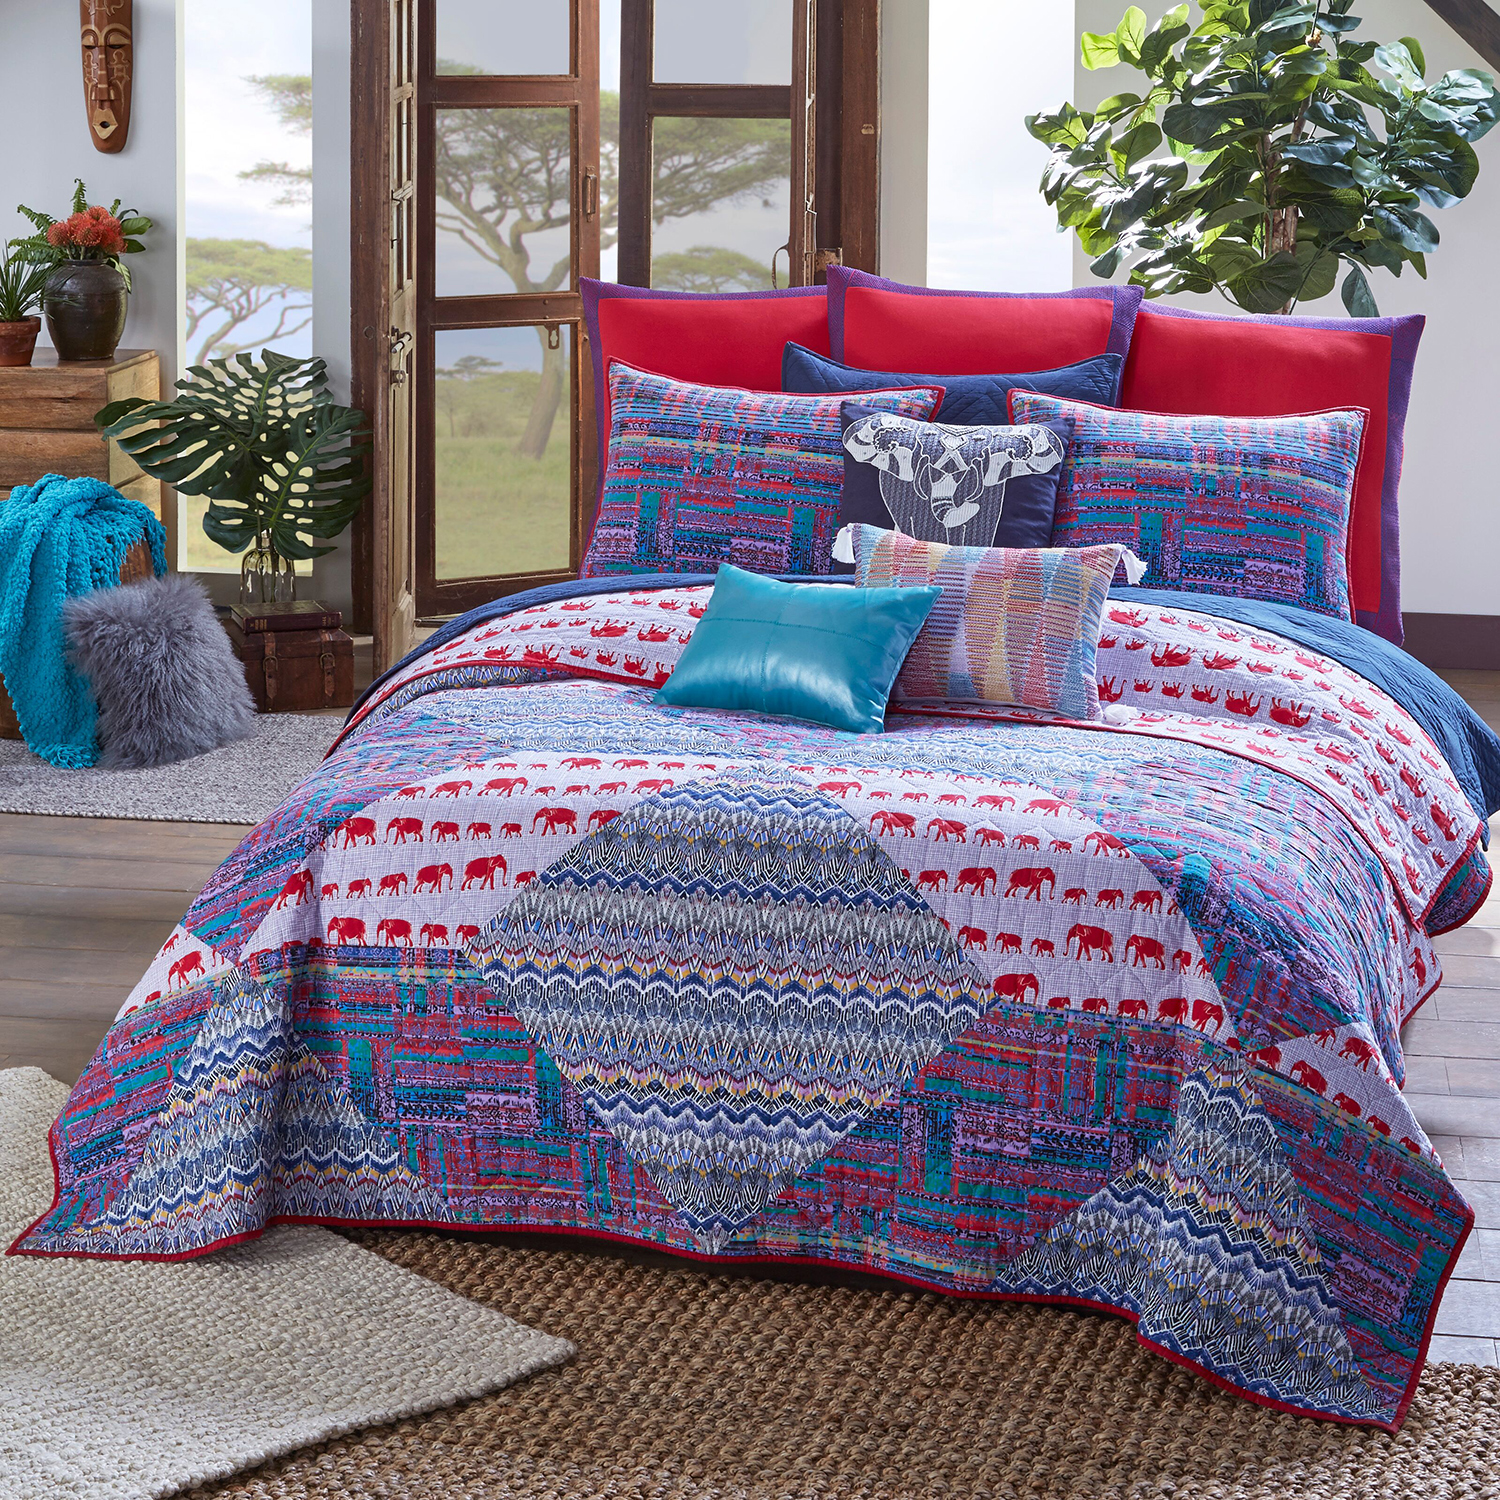 Tanzania Kambiya By Blissliving Home Bedding